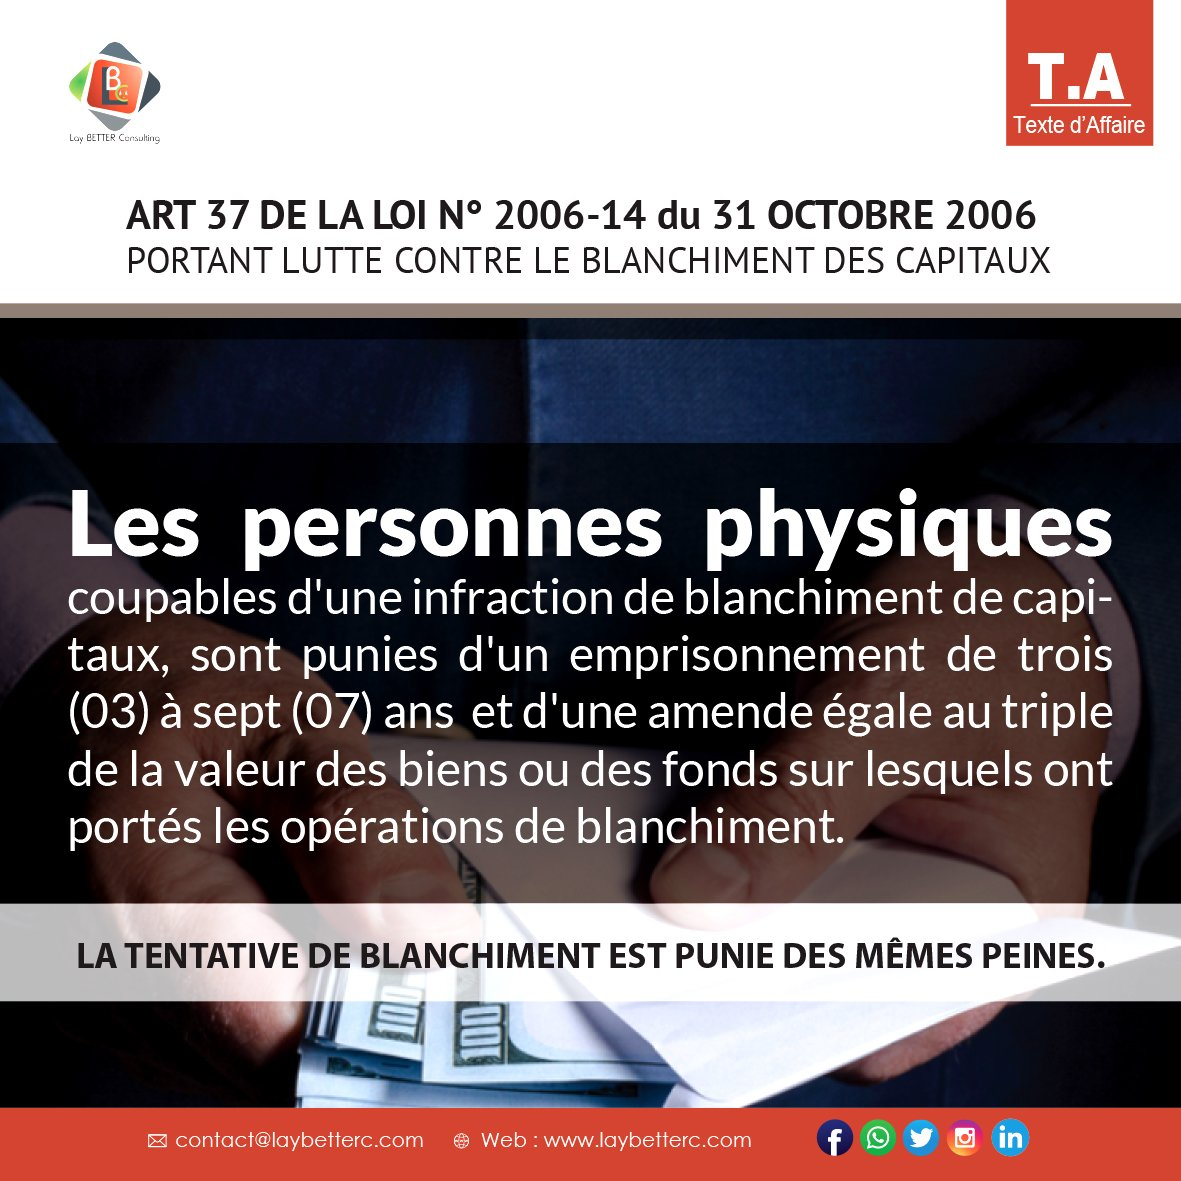 #TextedAffaires https://t.co/0iS3dZrG1Y